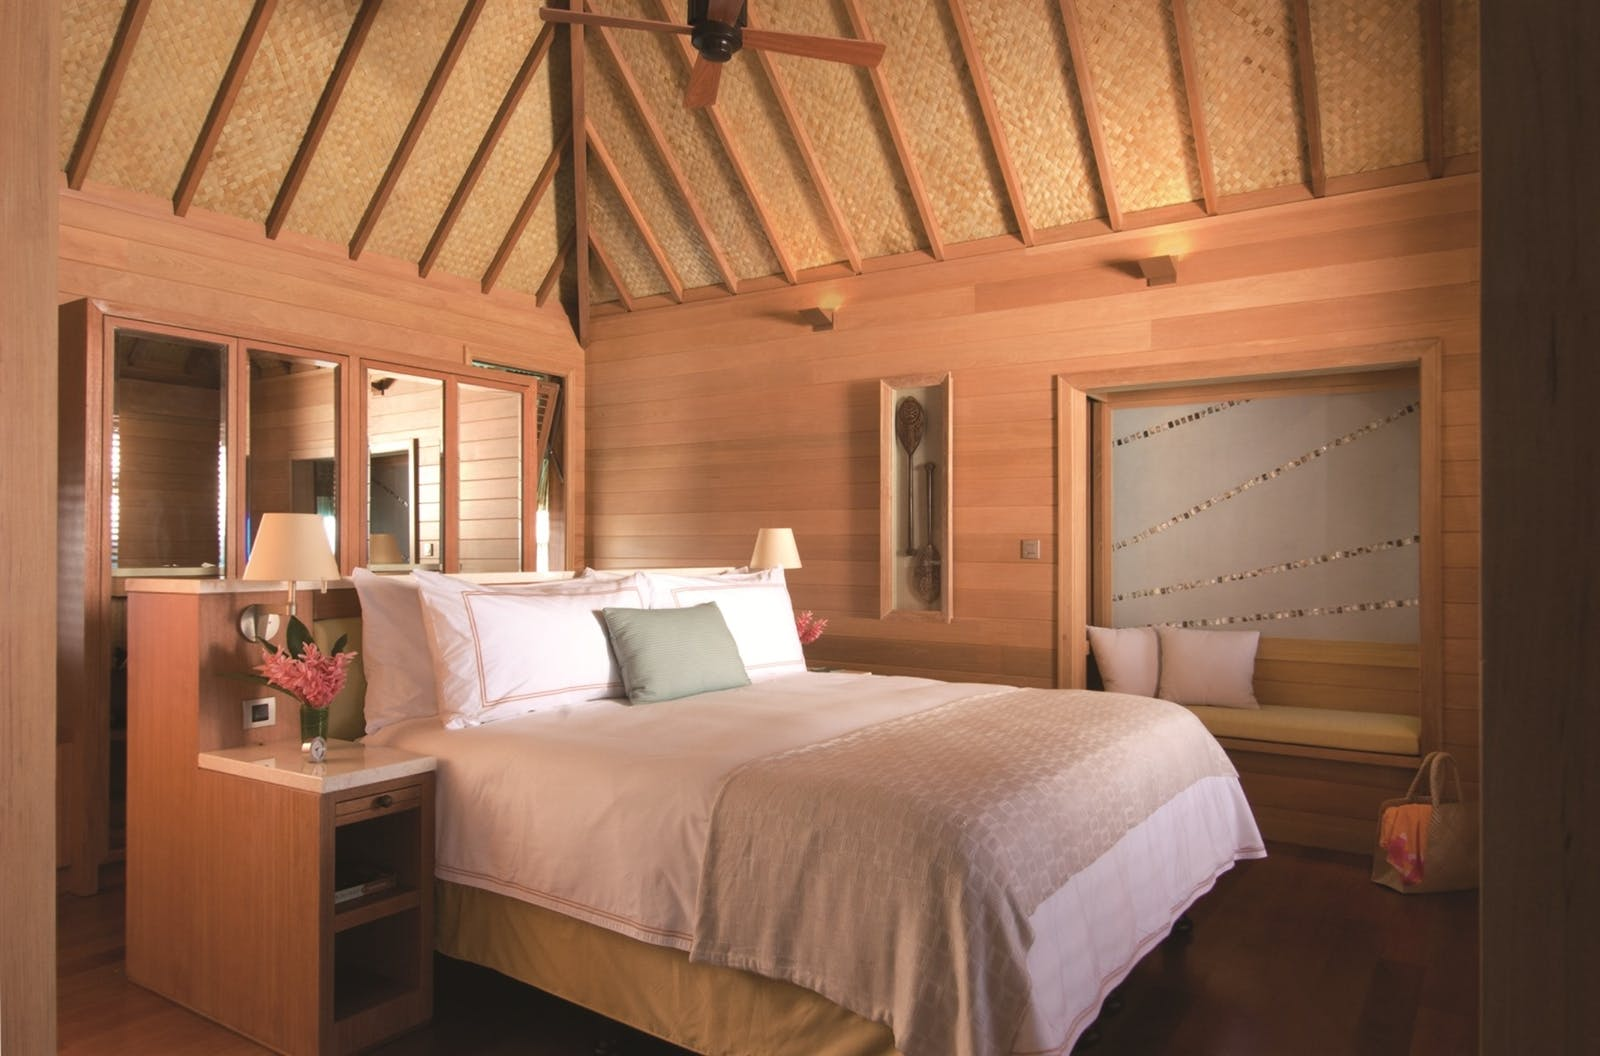 Bedroom at Four Seasons Bora Bora Resort, French Polynesia